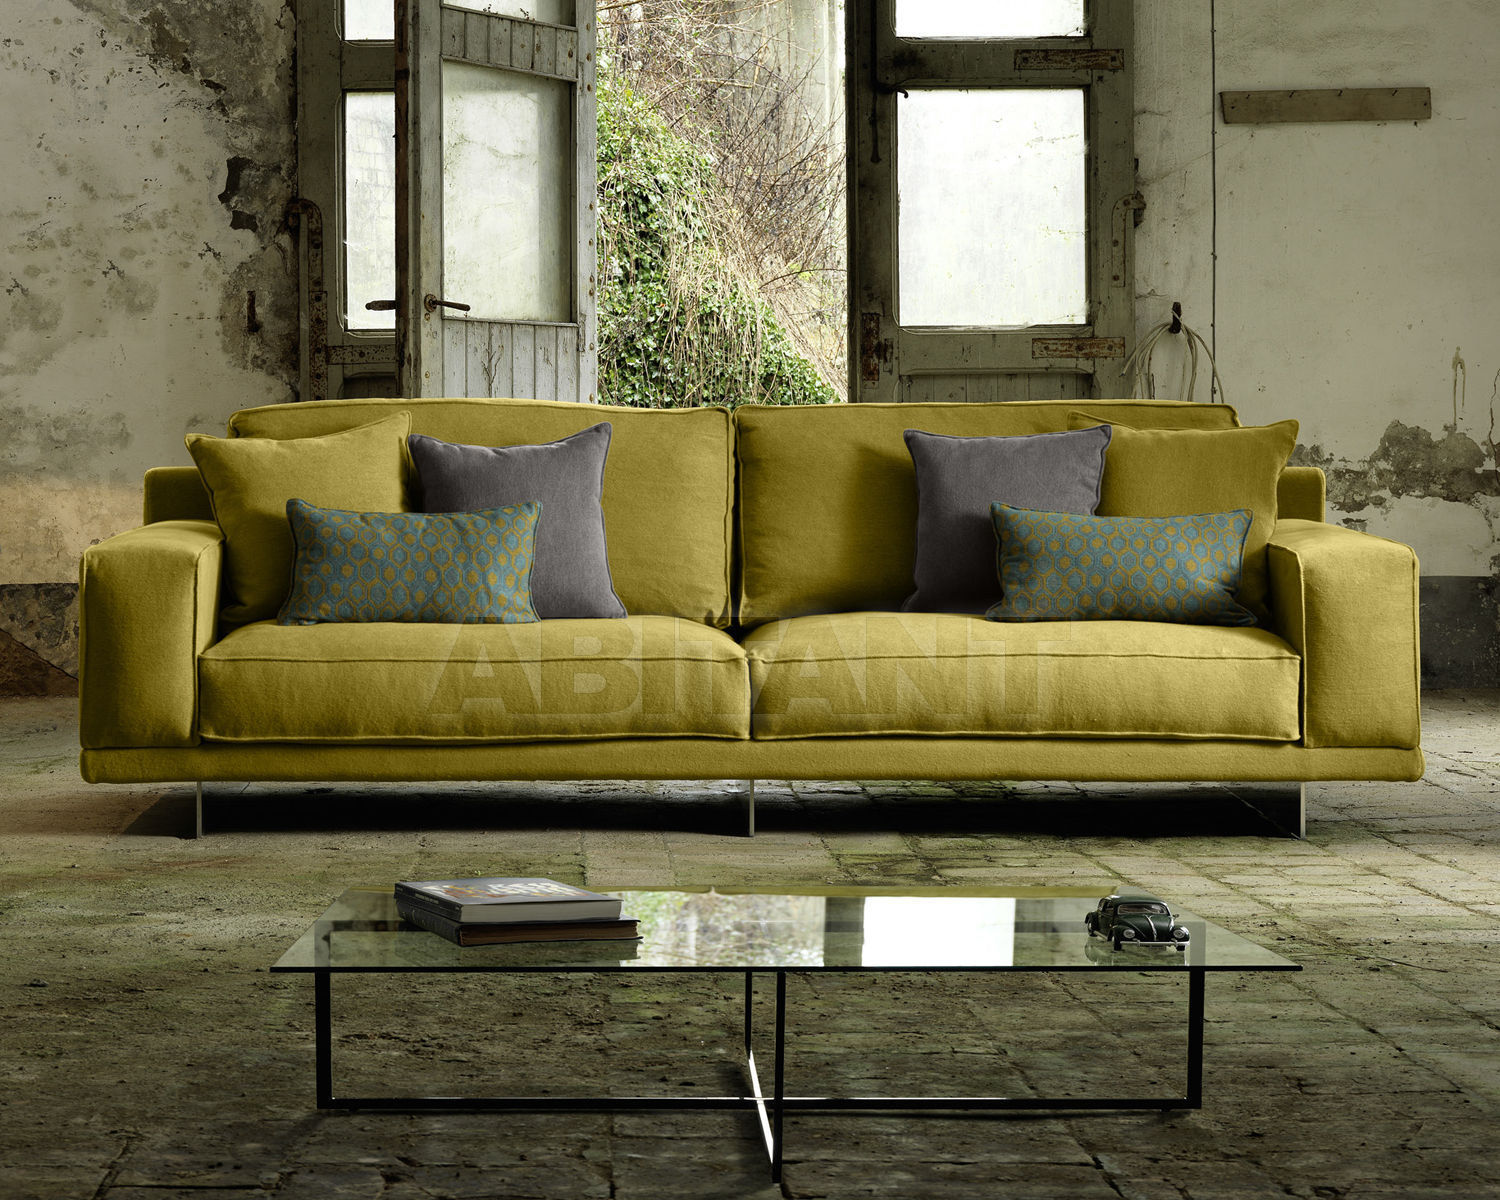 Sofa yellow domingo salotti bresson chic divano 4 posti - Divano 4 posti ...